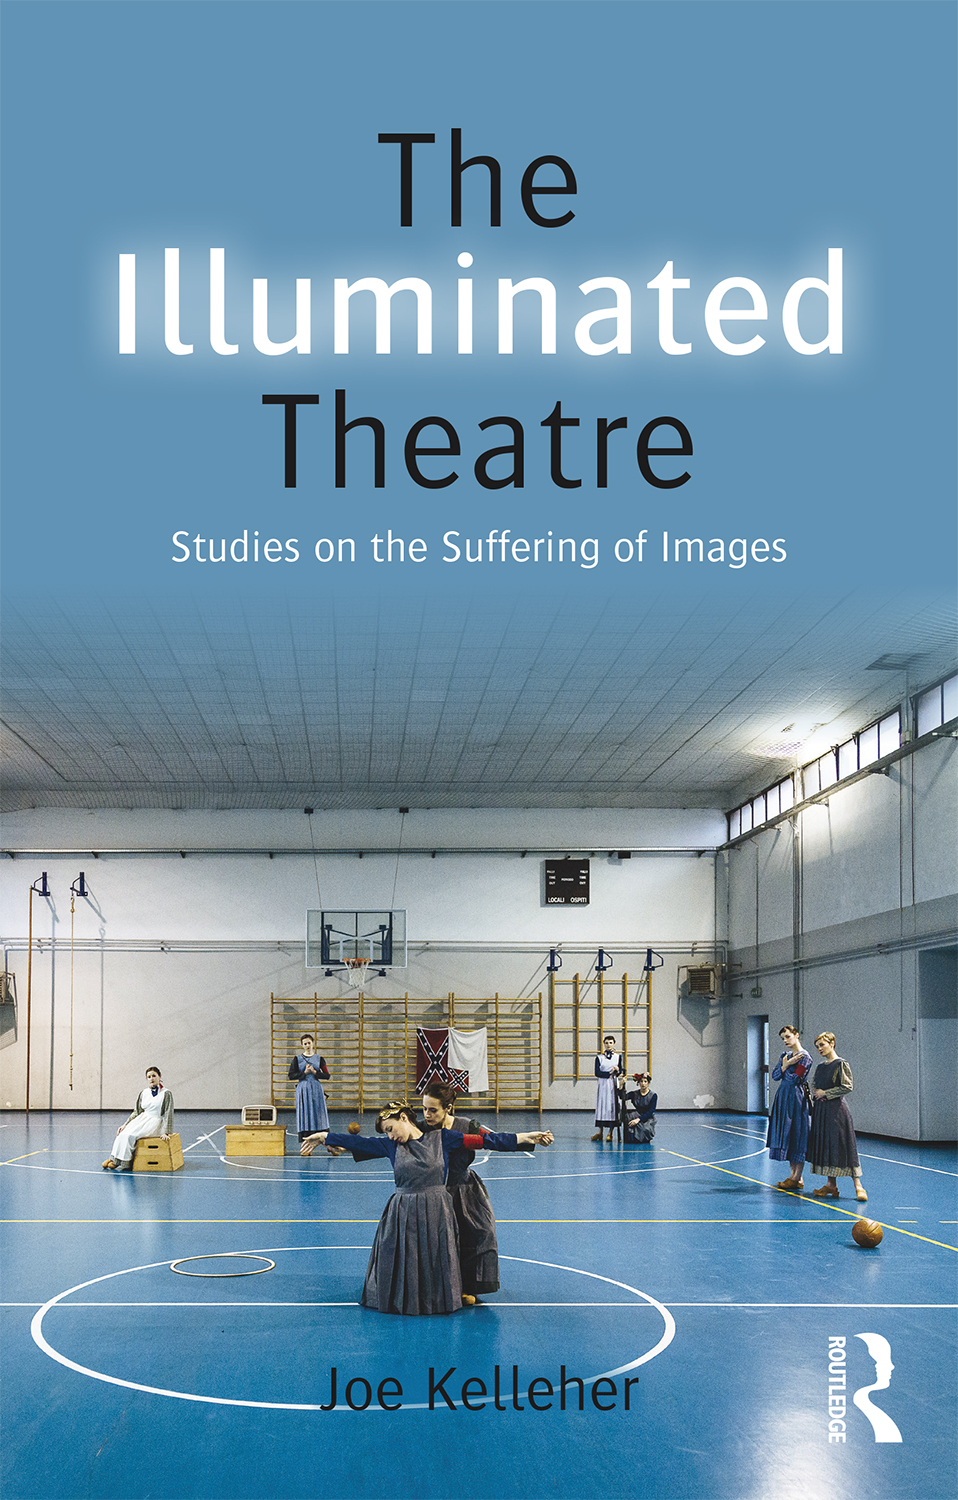 Joe Kelleher | The Illuminated Theatre. Studies on the Suffering of Images